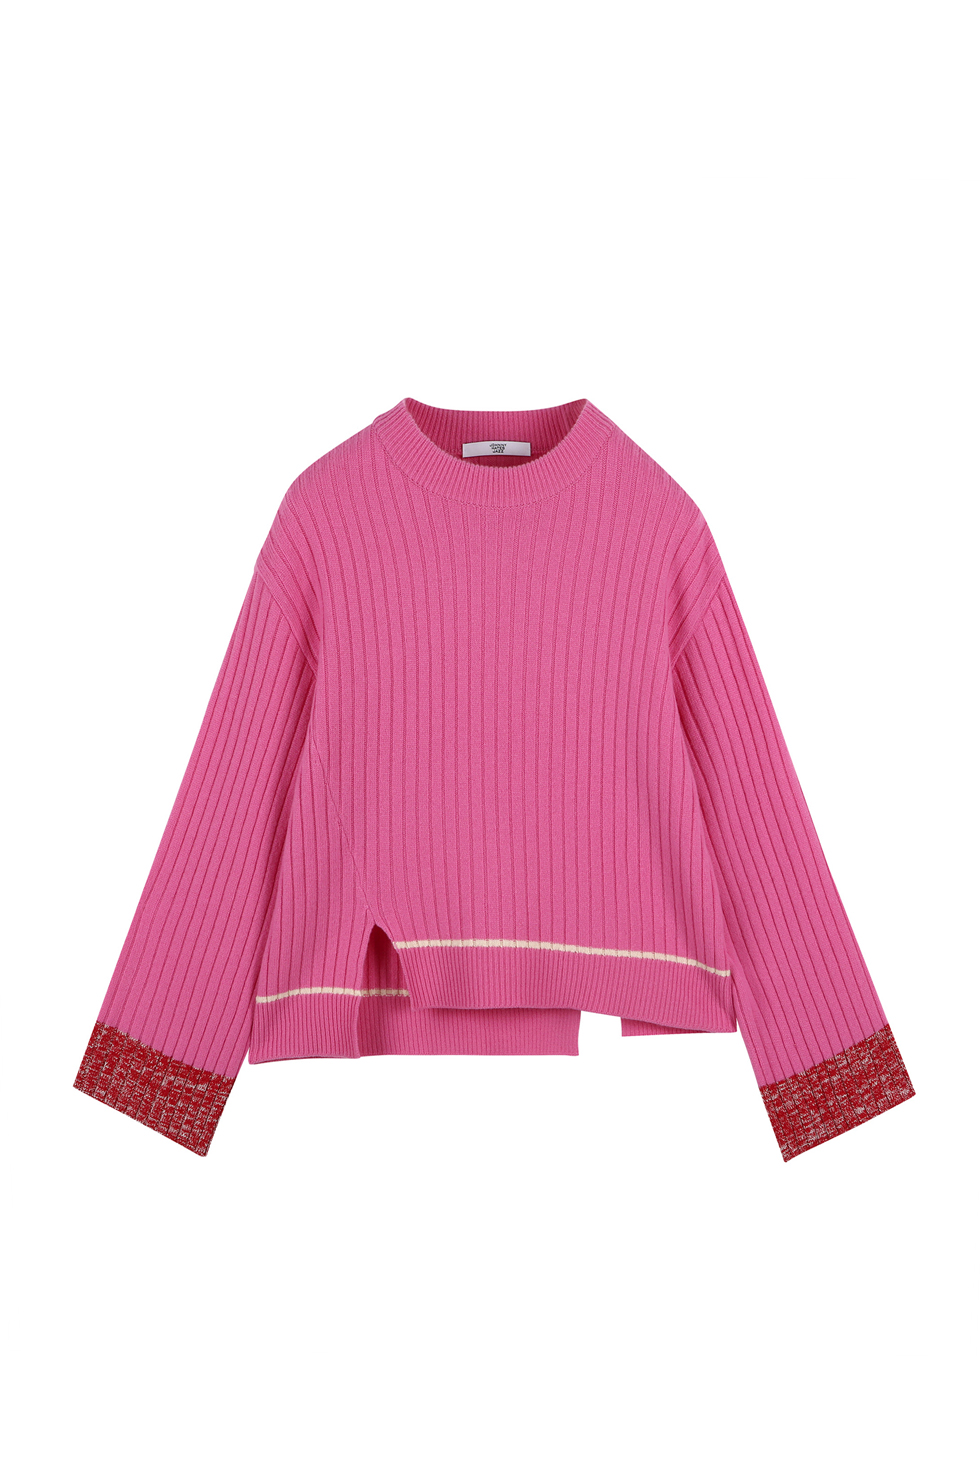 COLOR BLOCK KNIT PULLOVER - PINK